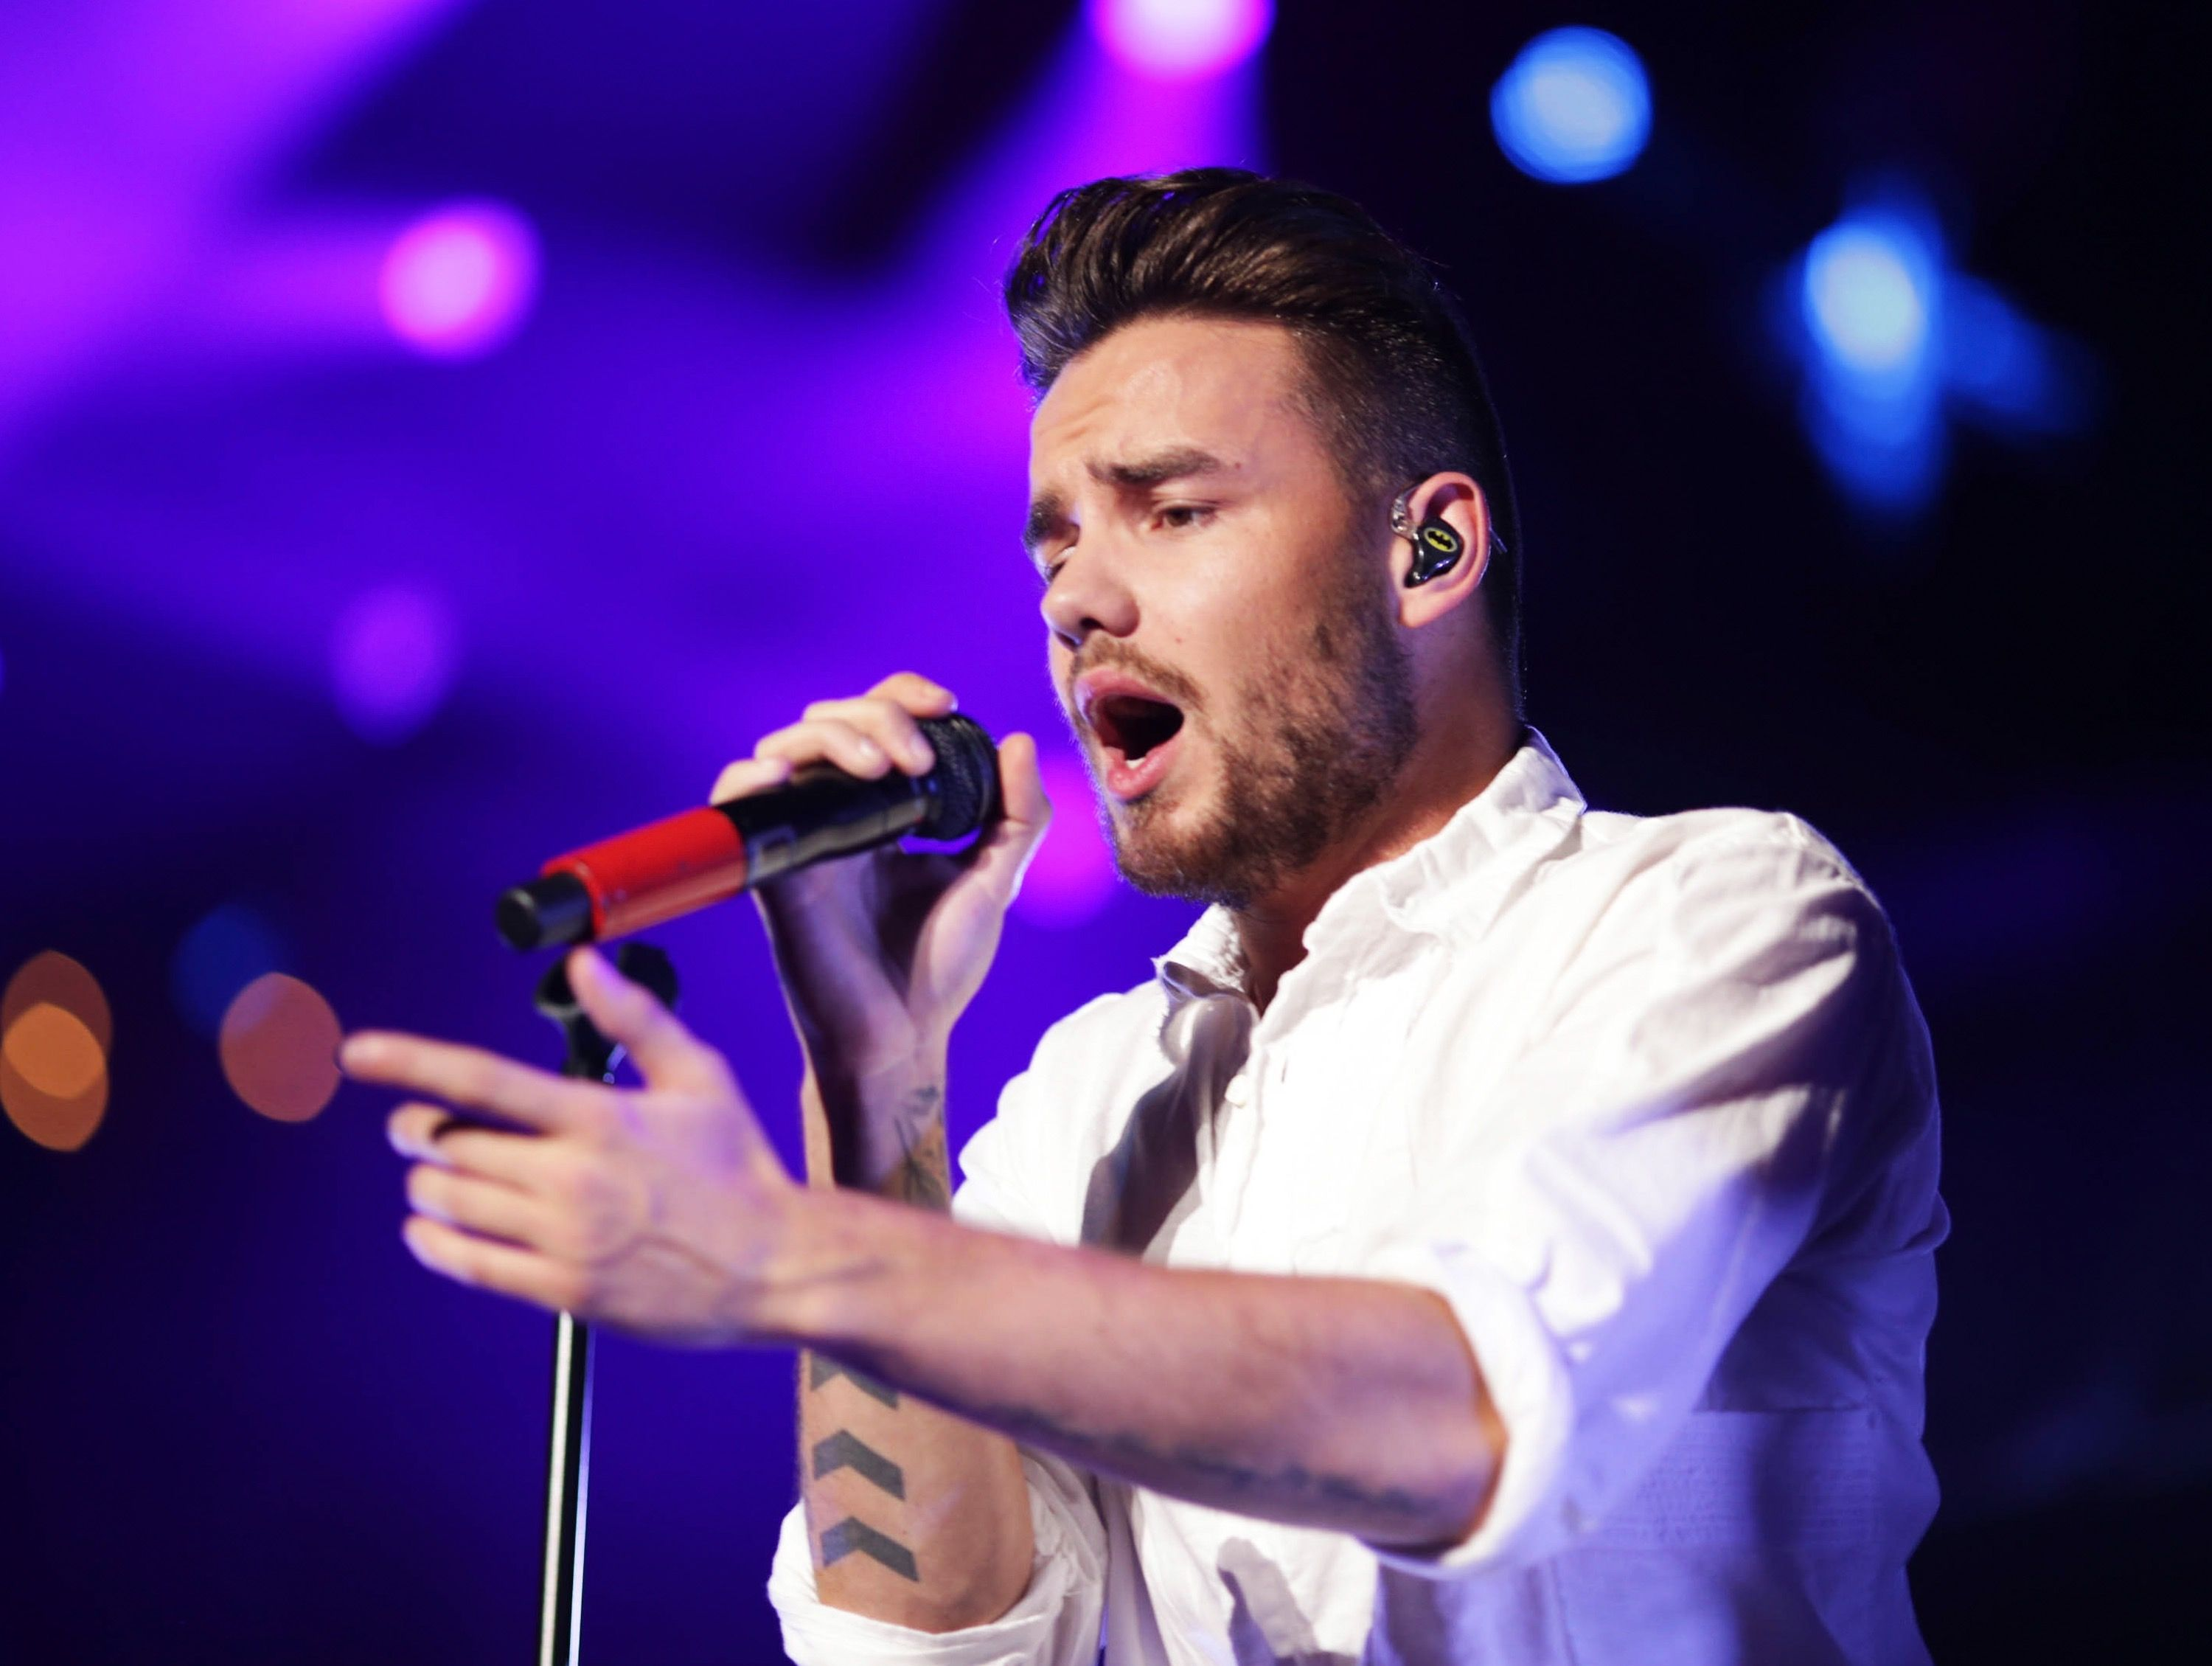 Recording artist Liam Payne of music group One Direction performs onstage during 102.7 KIIS FM's Jingle Ball 2015 Presented by Capital One at STAPLES CENTER on December 4, 2015 in Los Angeles, California.